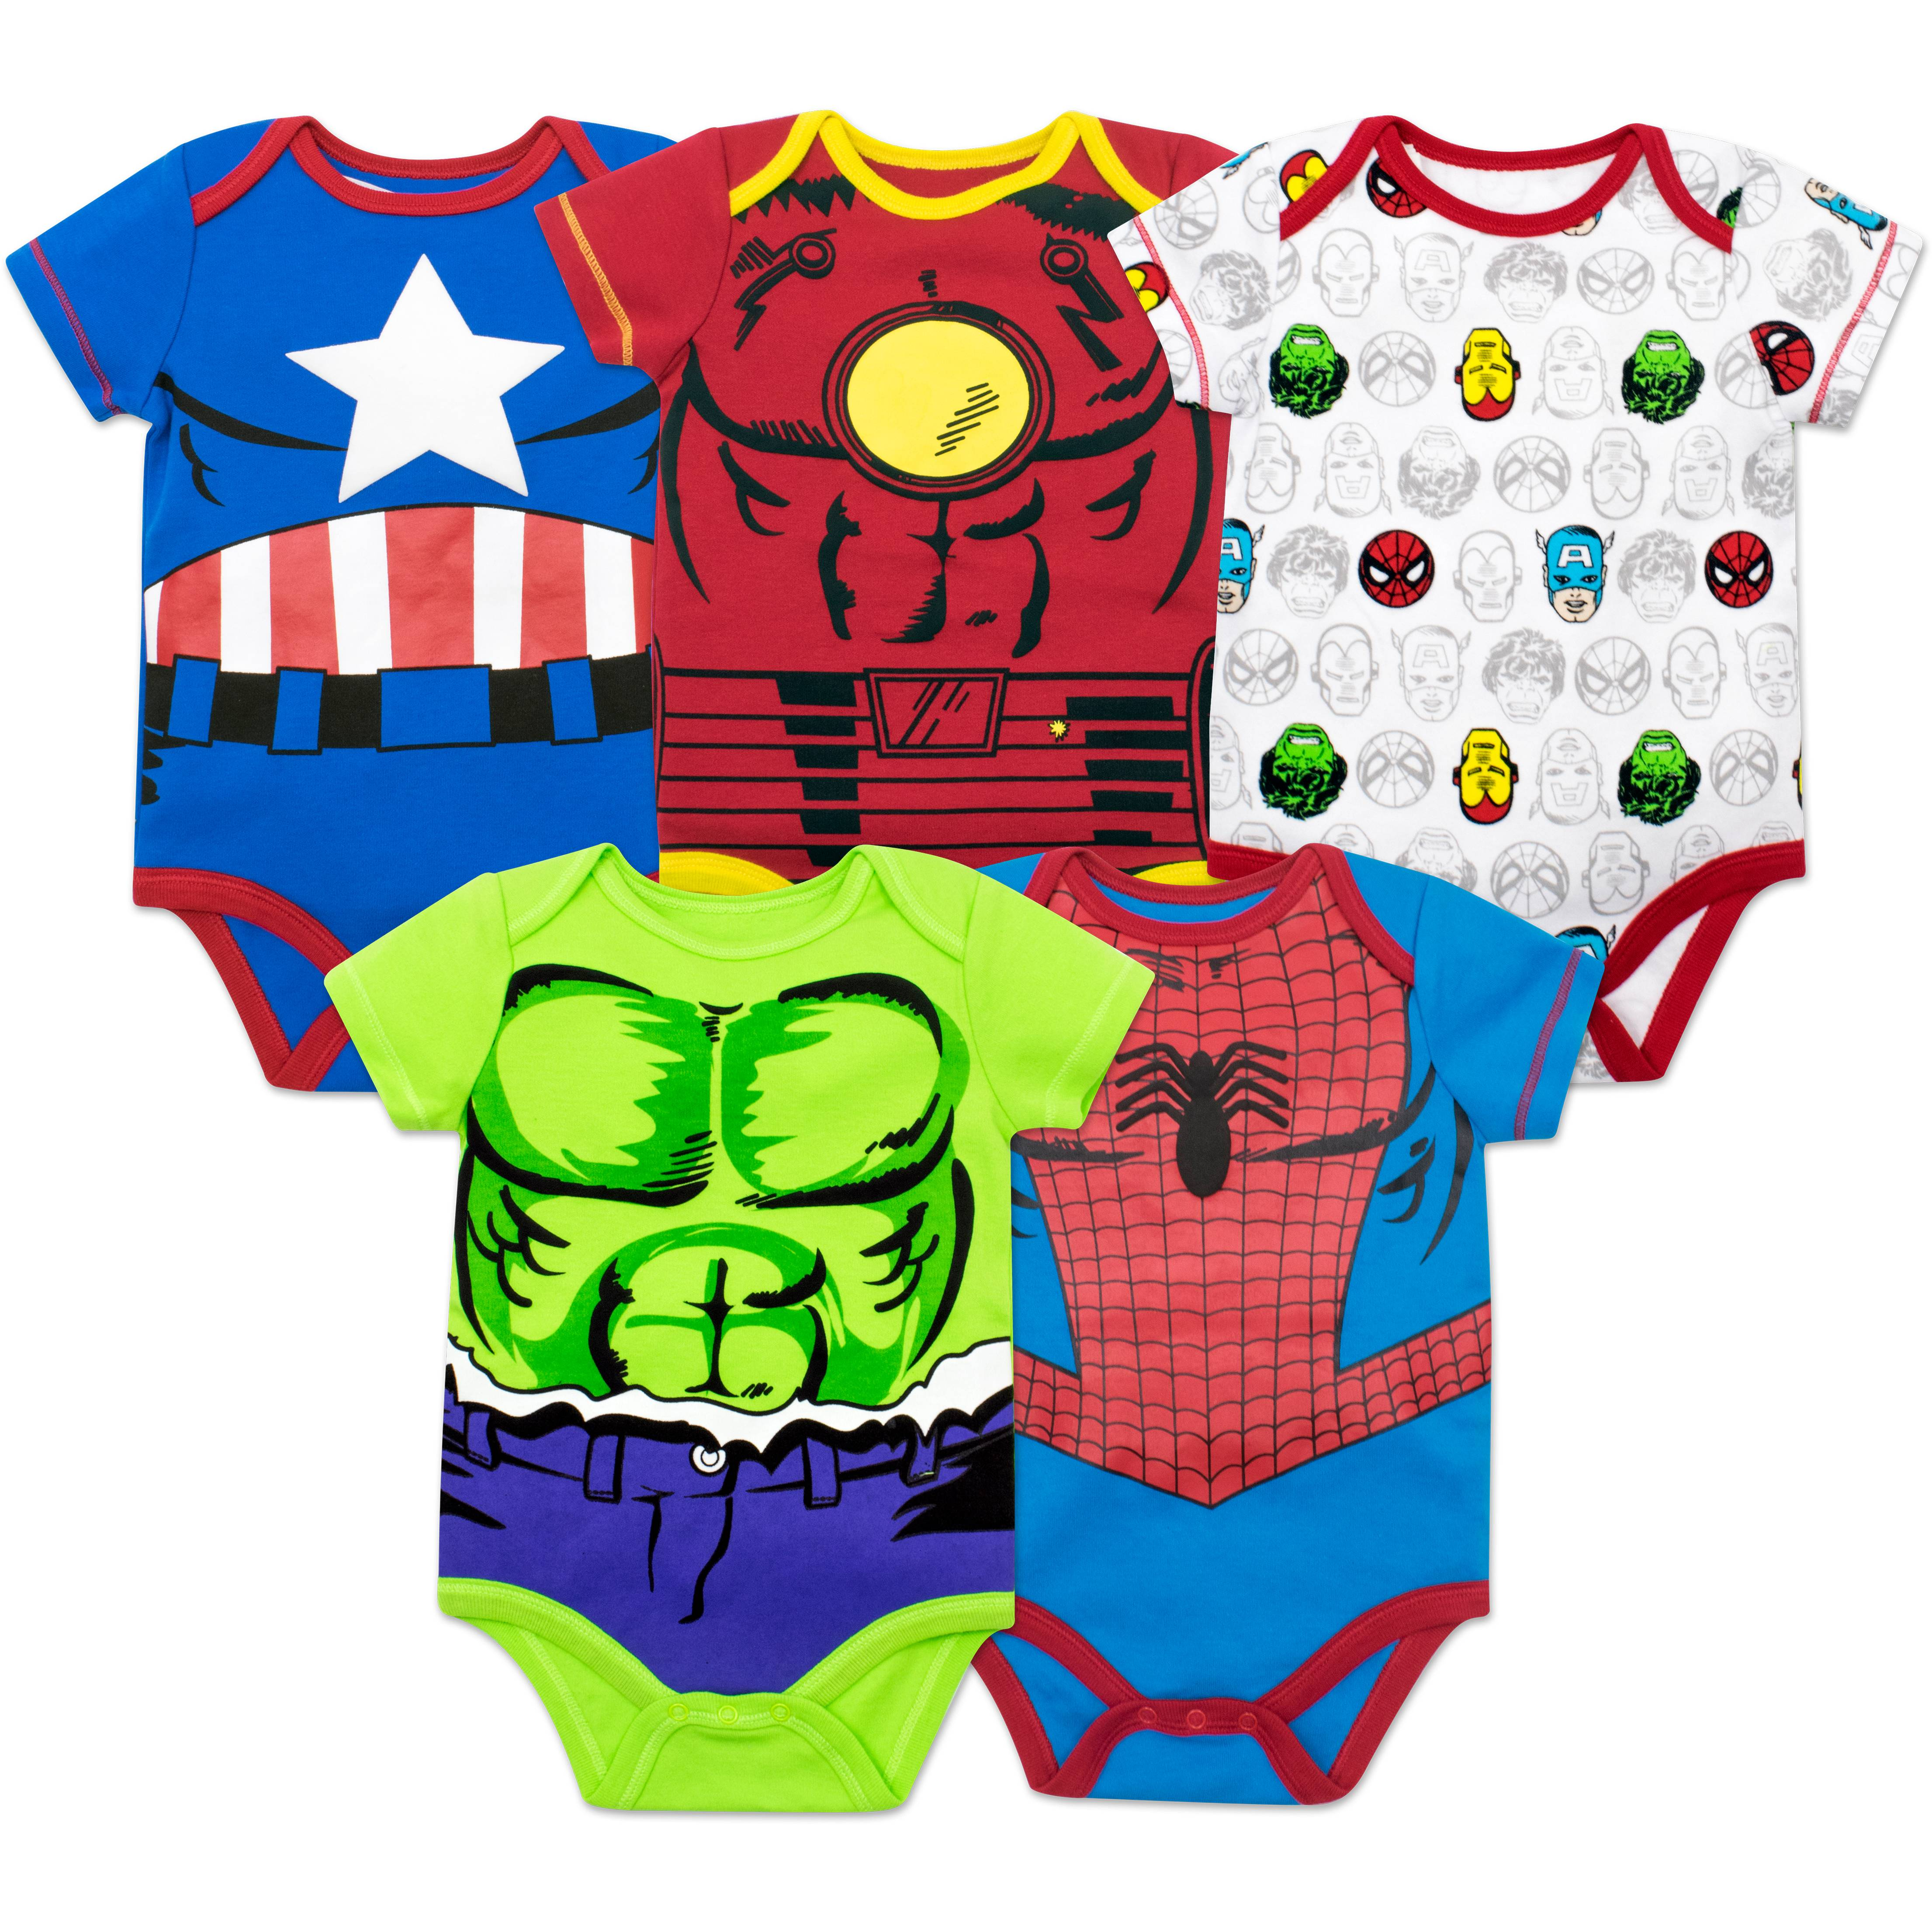 Marvel Baby Boys' 5 Pack Bodysuits - The Hulk, Spiderman, Iron Man and Captain America (0-3 Months)